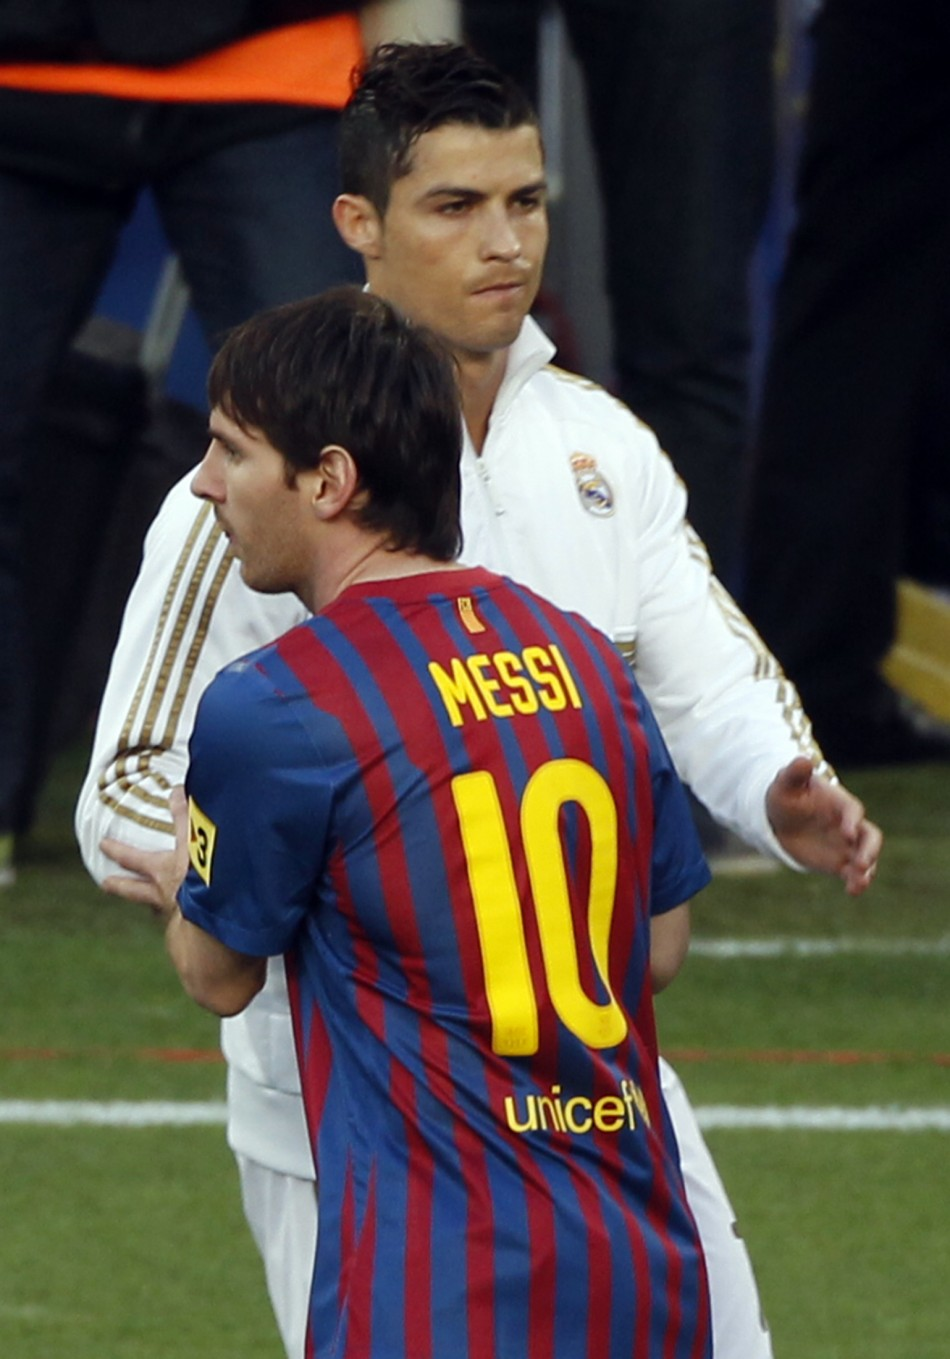 Barcelona039s Lionel Messi greets Real Madrid039s Ronaldo before their Spanish first division quotEl Clasicoquot soccer match